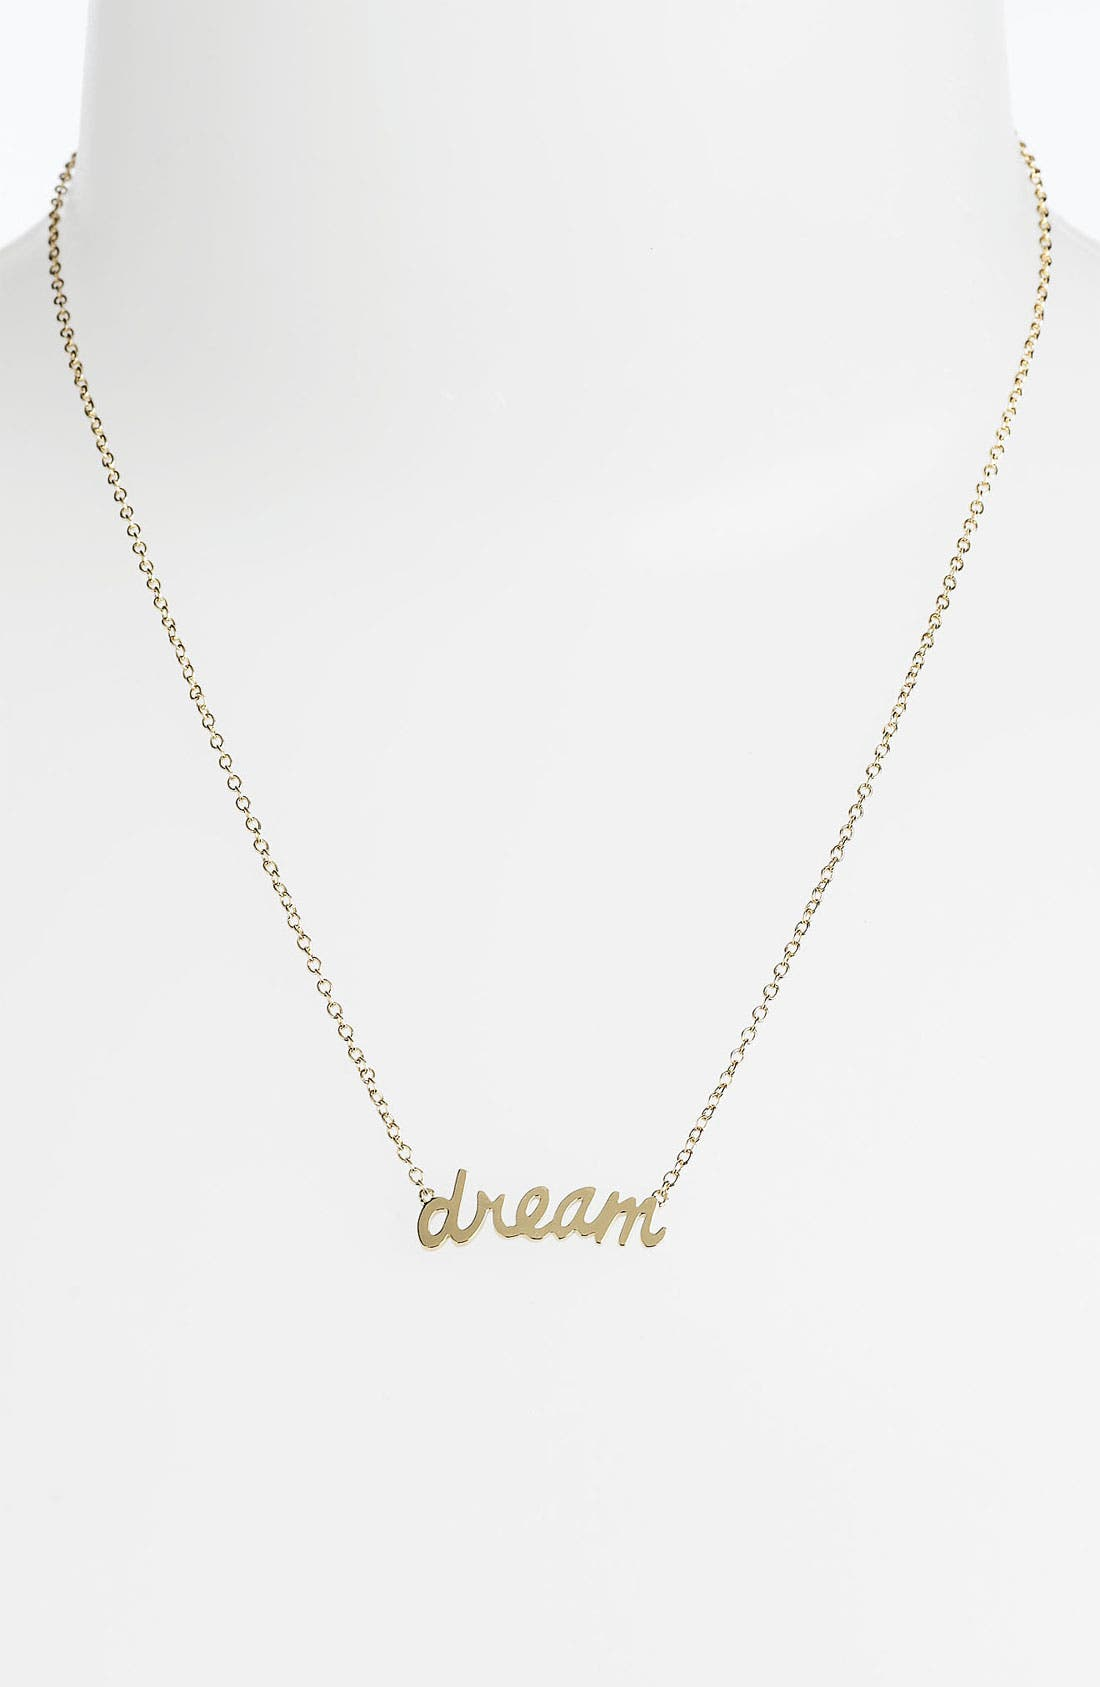 Alternate Image 1 Selected - Ariella Collection 'Messages - Dream' Script Pendant Necklace (Nordstrom Exclusive)